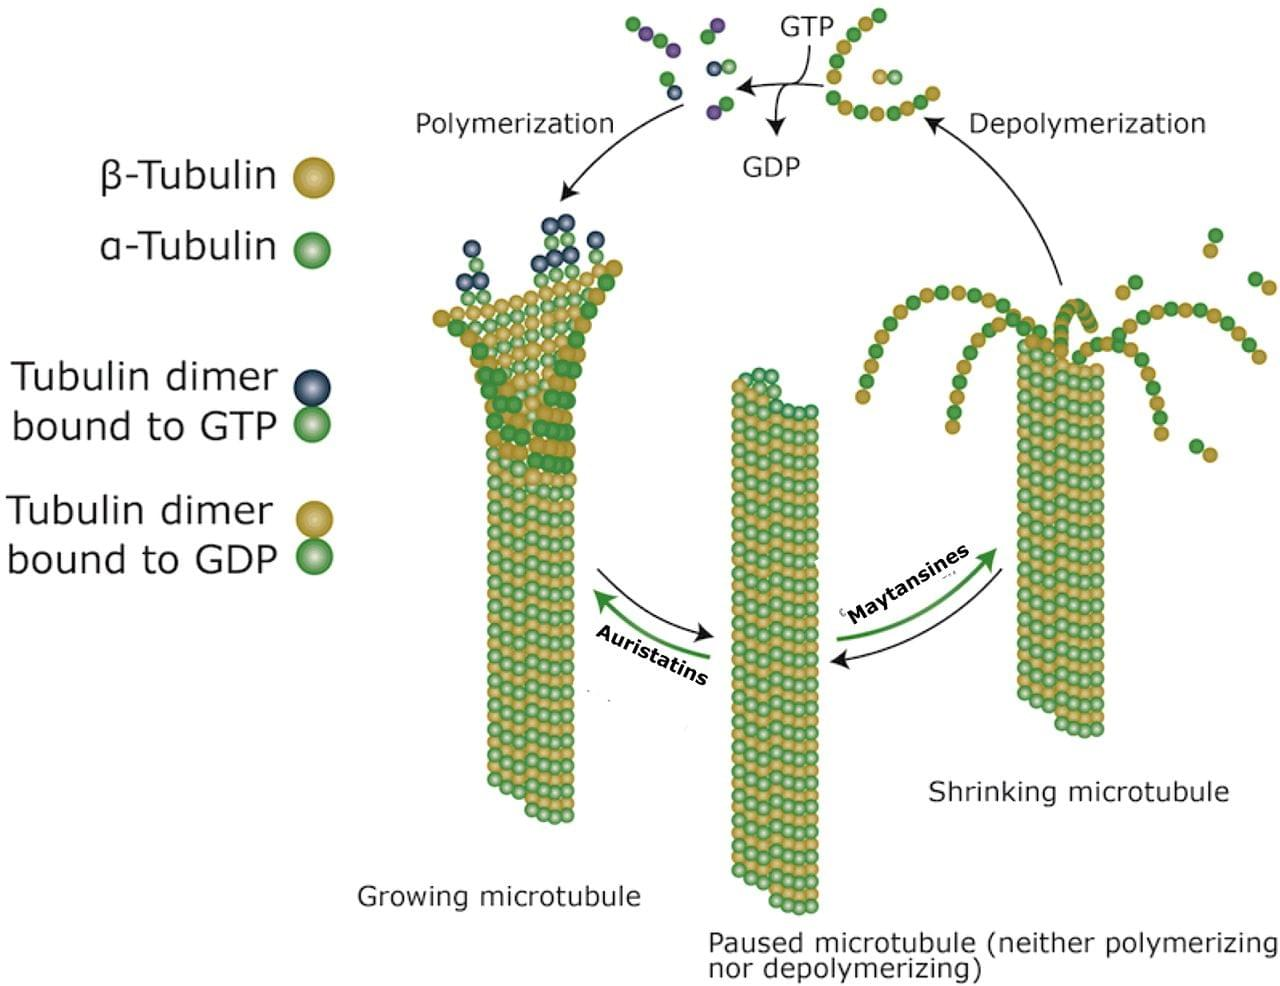 Toxins targeting tubulin filaments